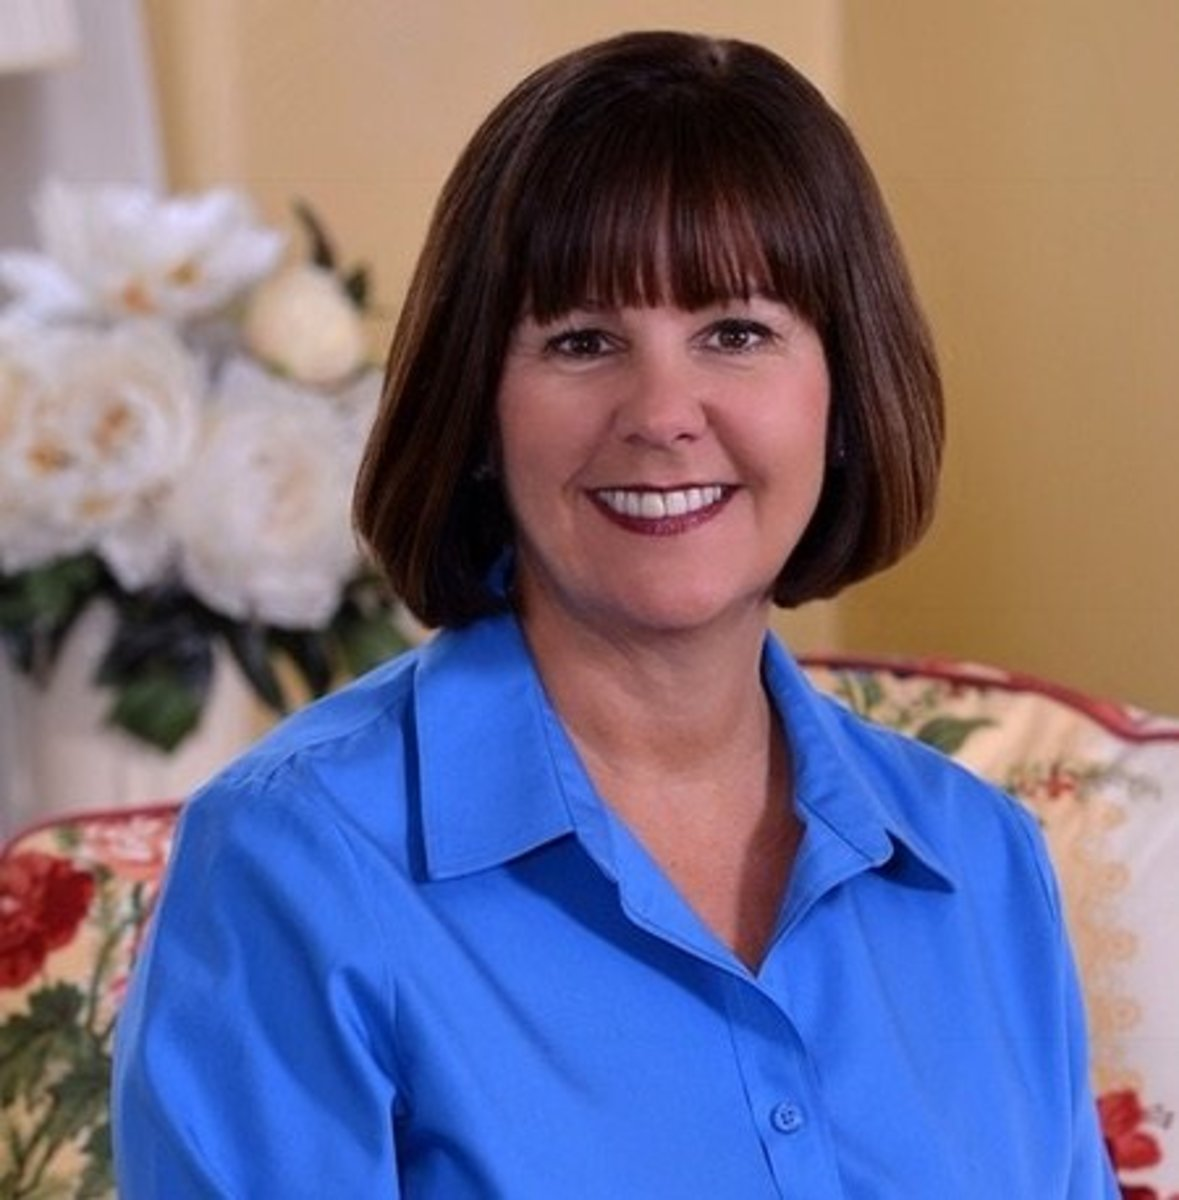 Karen Pence: Wife of the Vice President